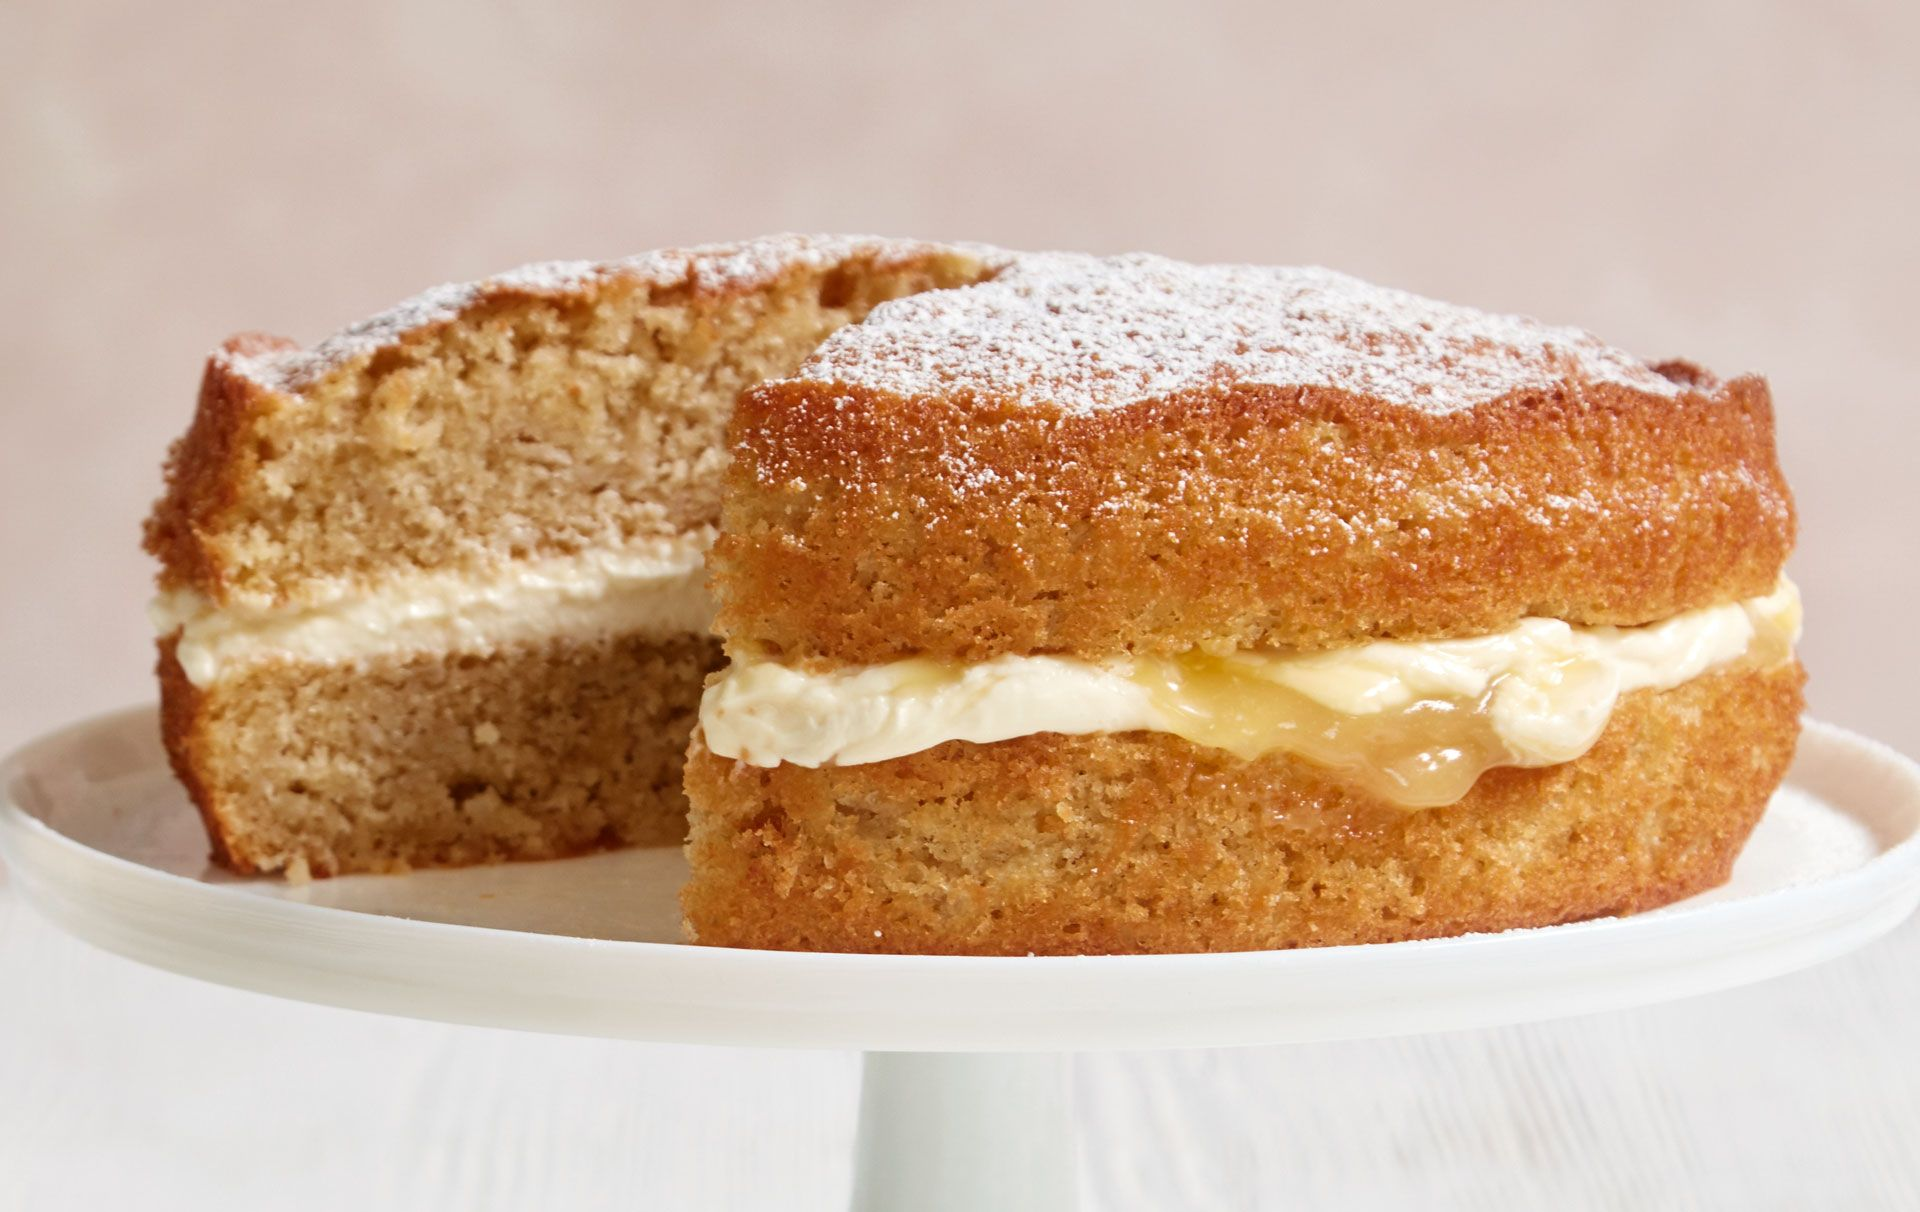 How to make Mary Berry's apple and lemon sandwich cake